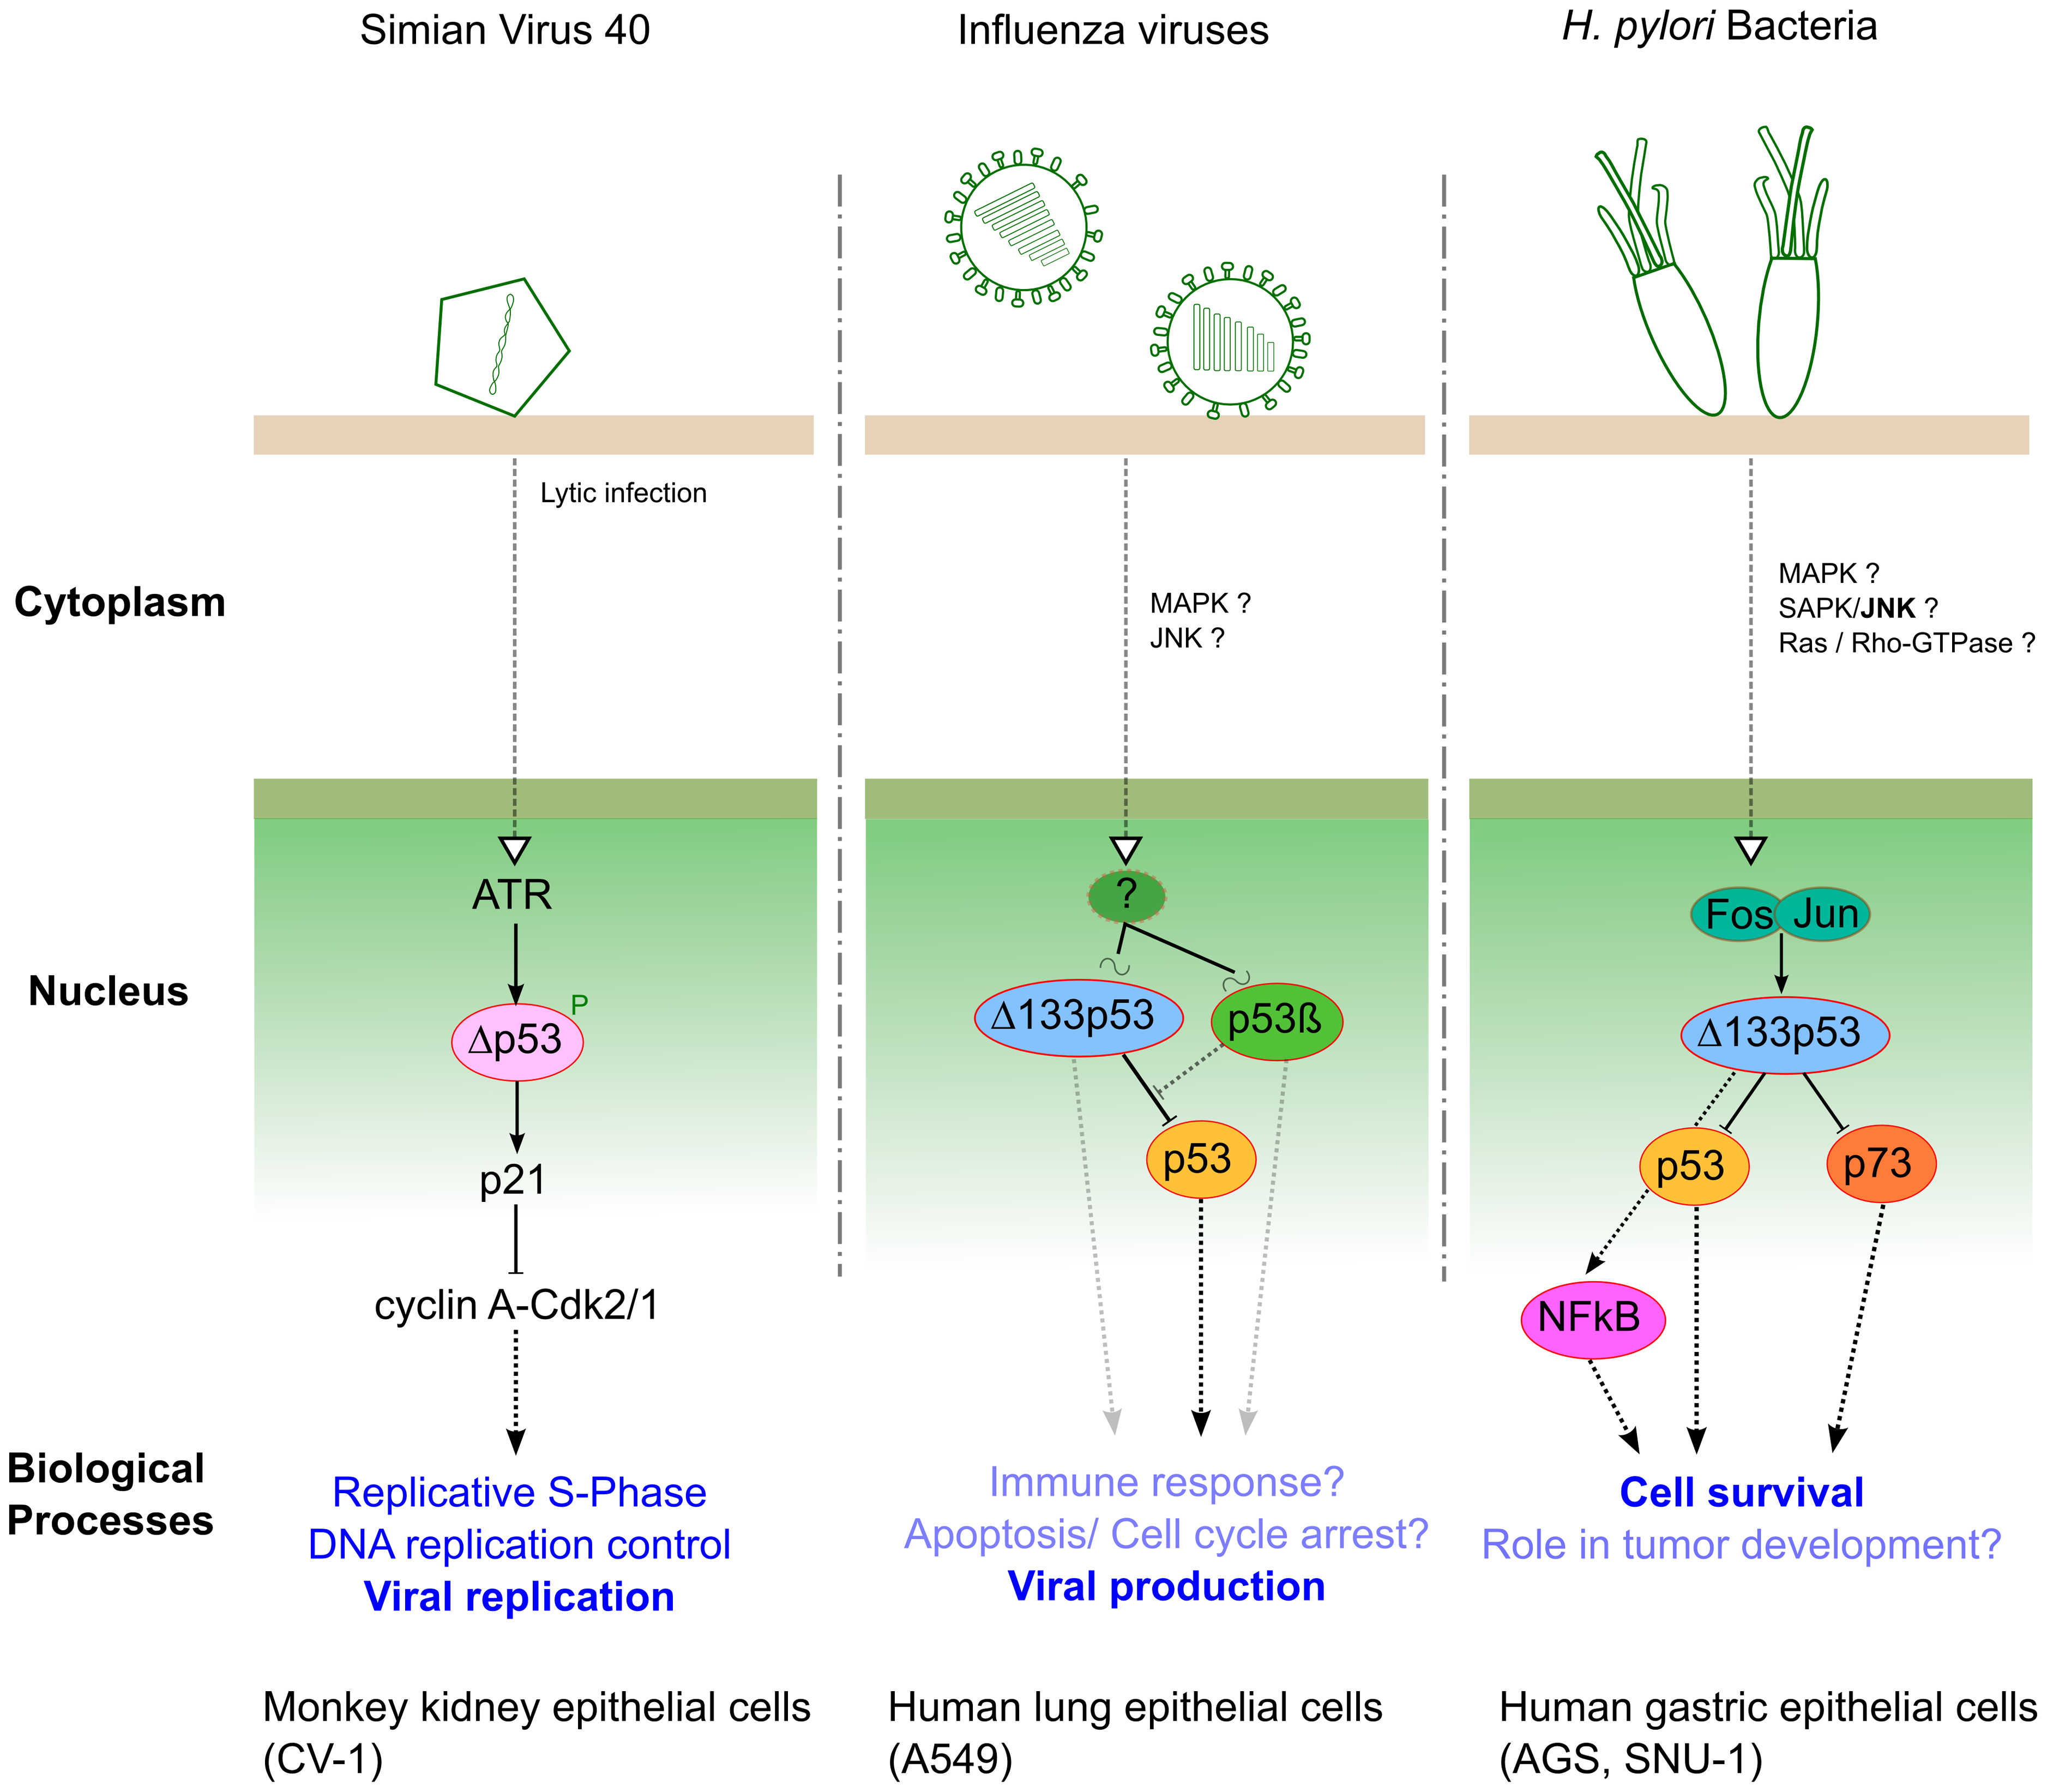 Three different pathogens represent three examples of interplay with p53 isoforms during infection.